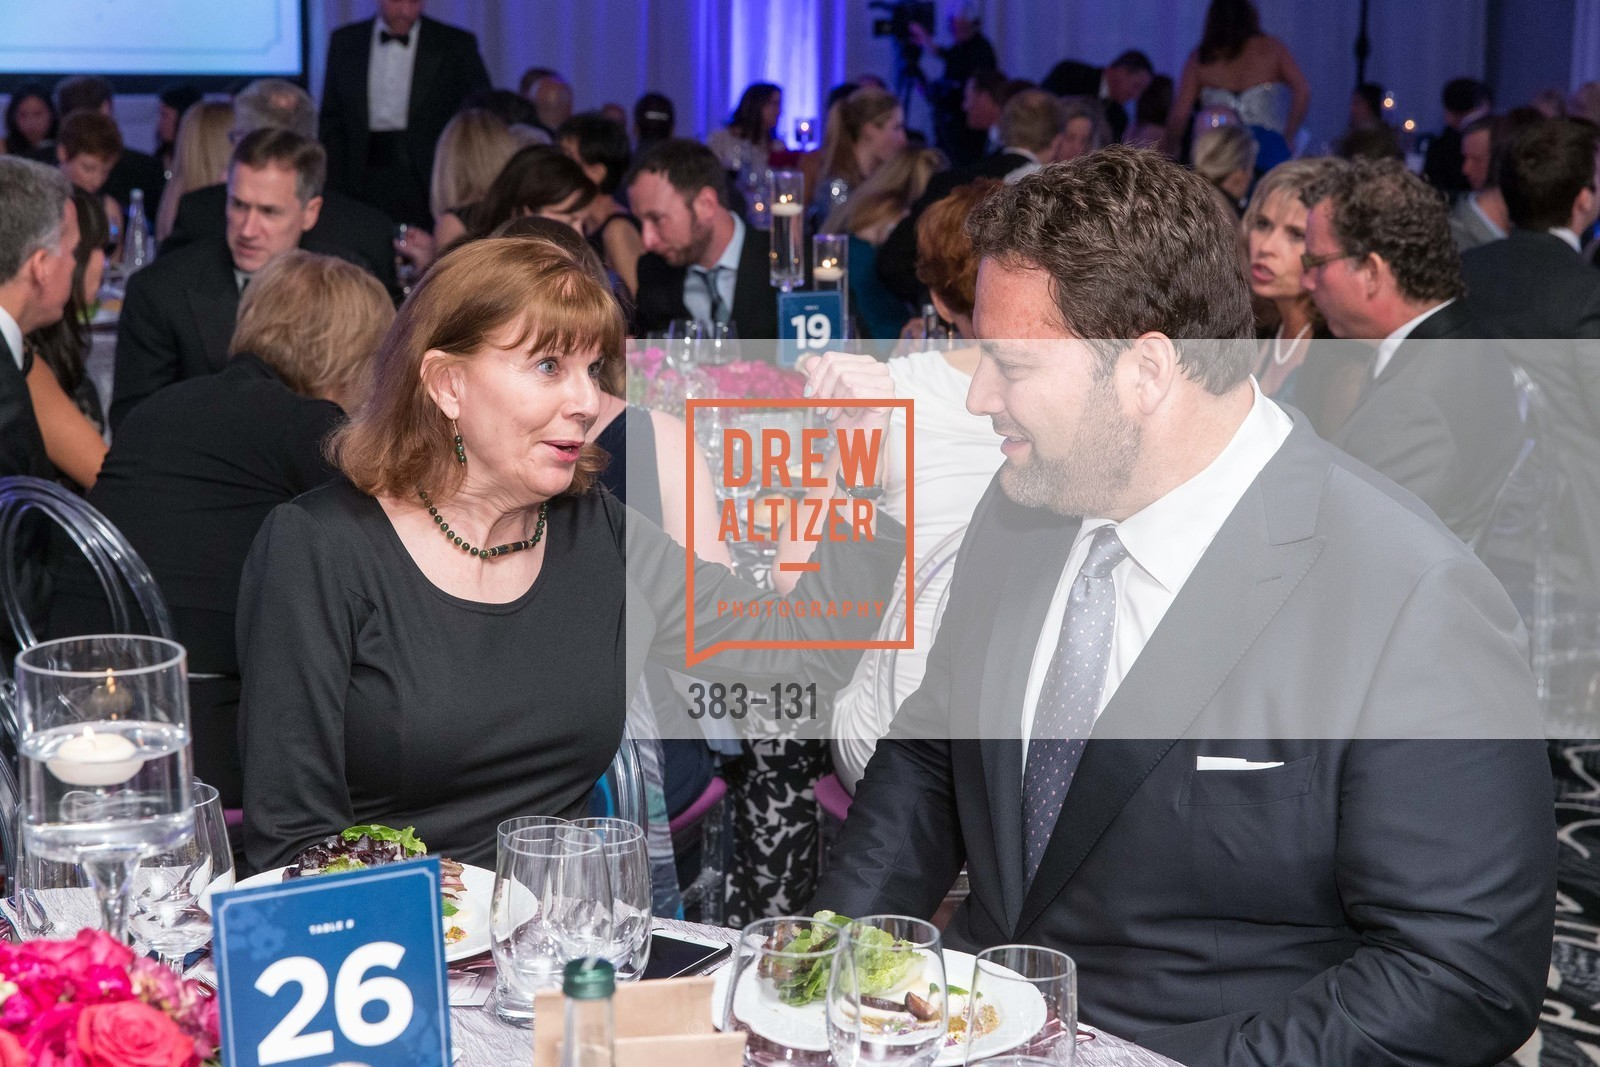 Julie Rickert, JUVENILE DIABETES RESEARCH FOUNDATION  Hope Gala, The Ritz-Carlton, May 29th, 2015,Drew Altizer, Drew Altizer Photography, full-service agency, private events, San Francisco photographer, photographer california